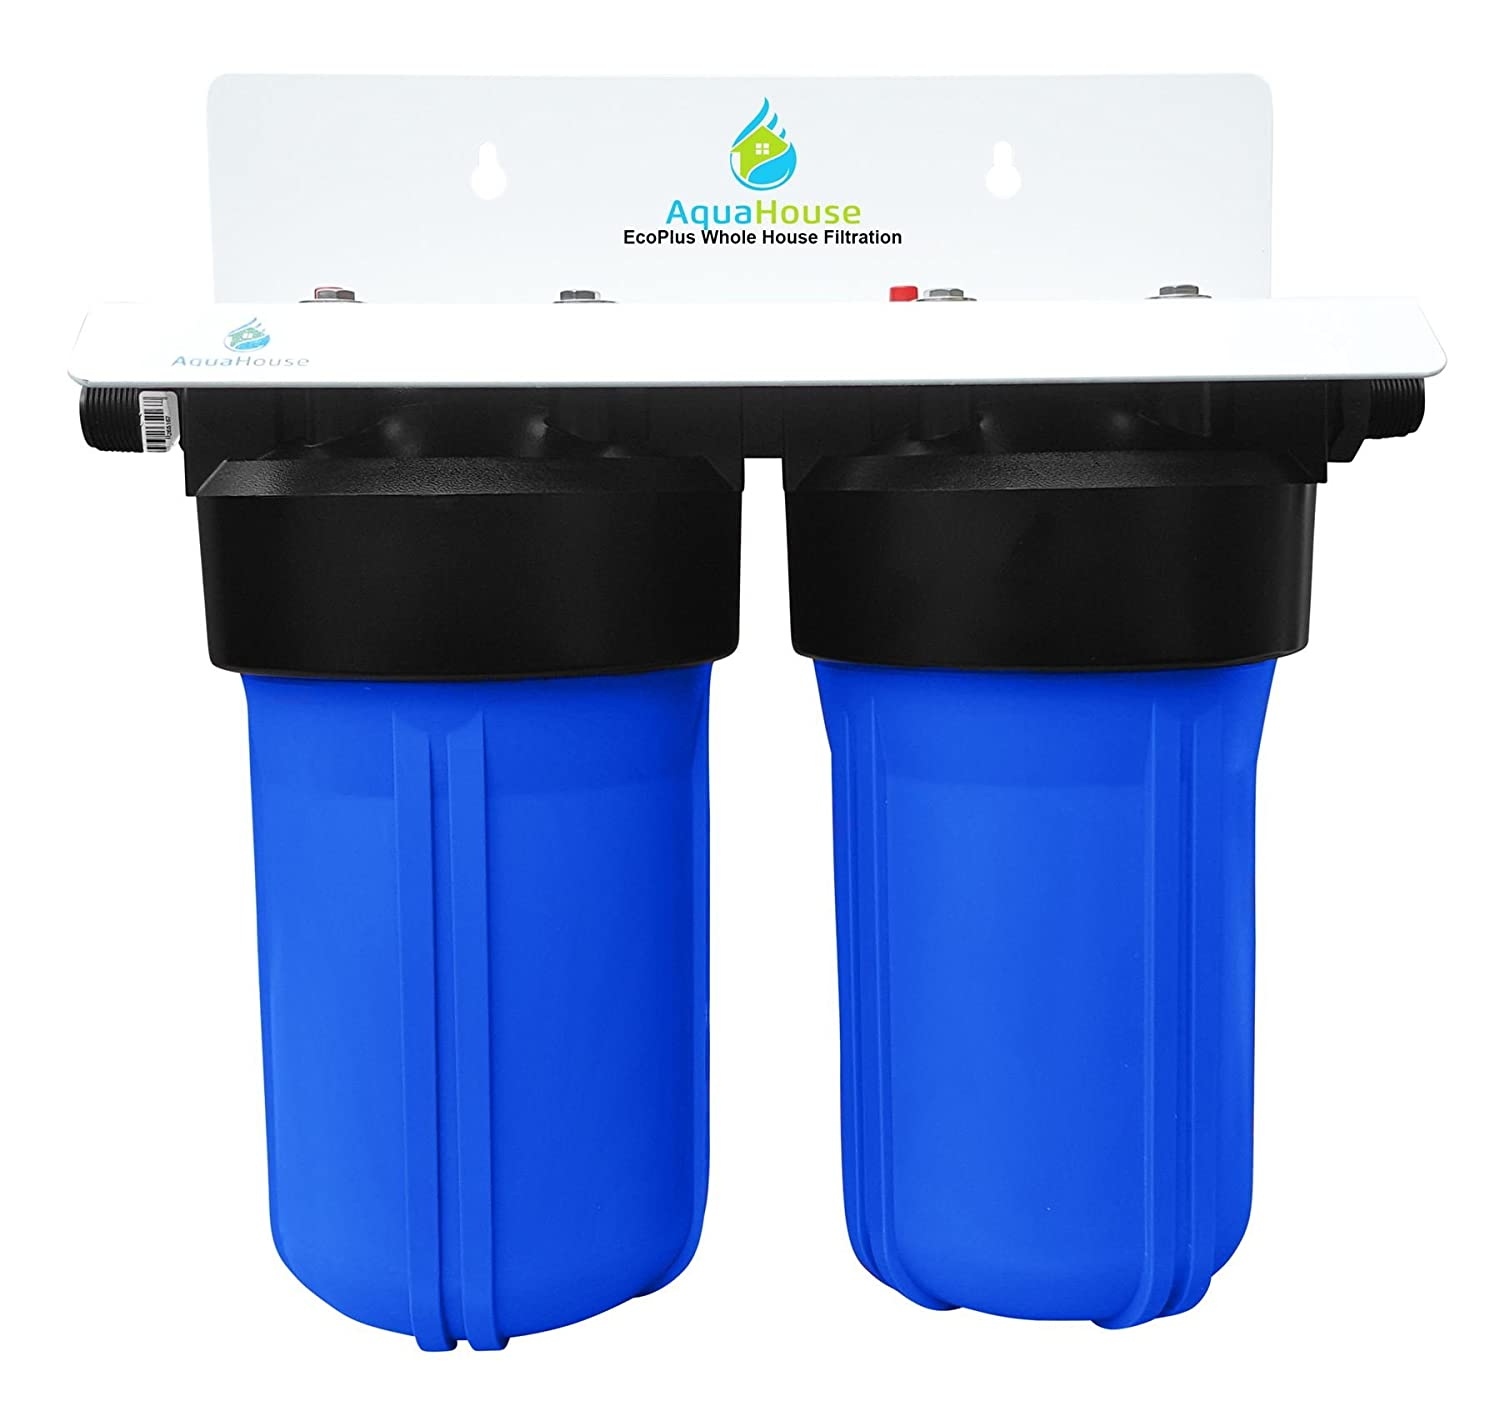 Home Water Filter System Whole House Water Filter System Filters Water For Whole Home